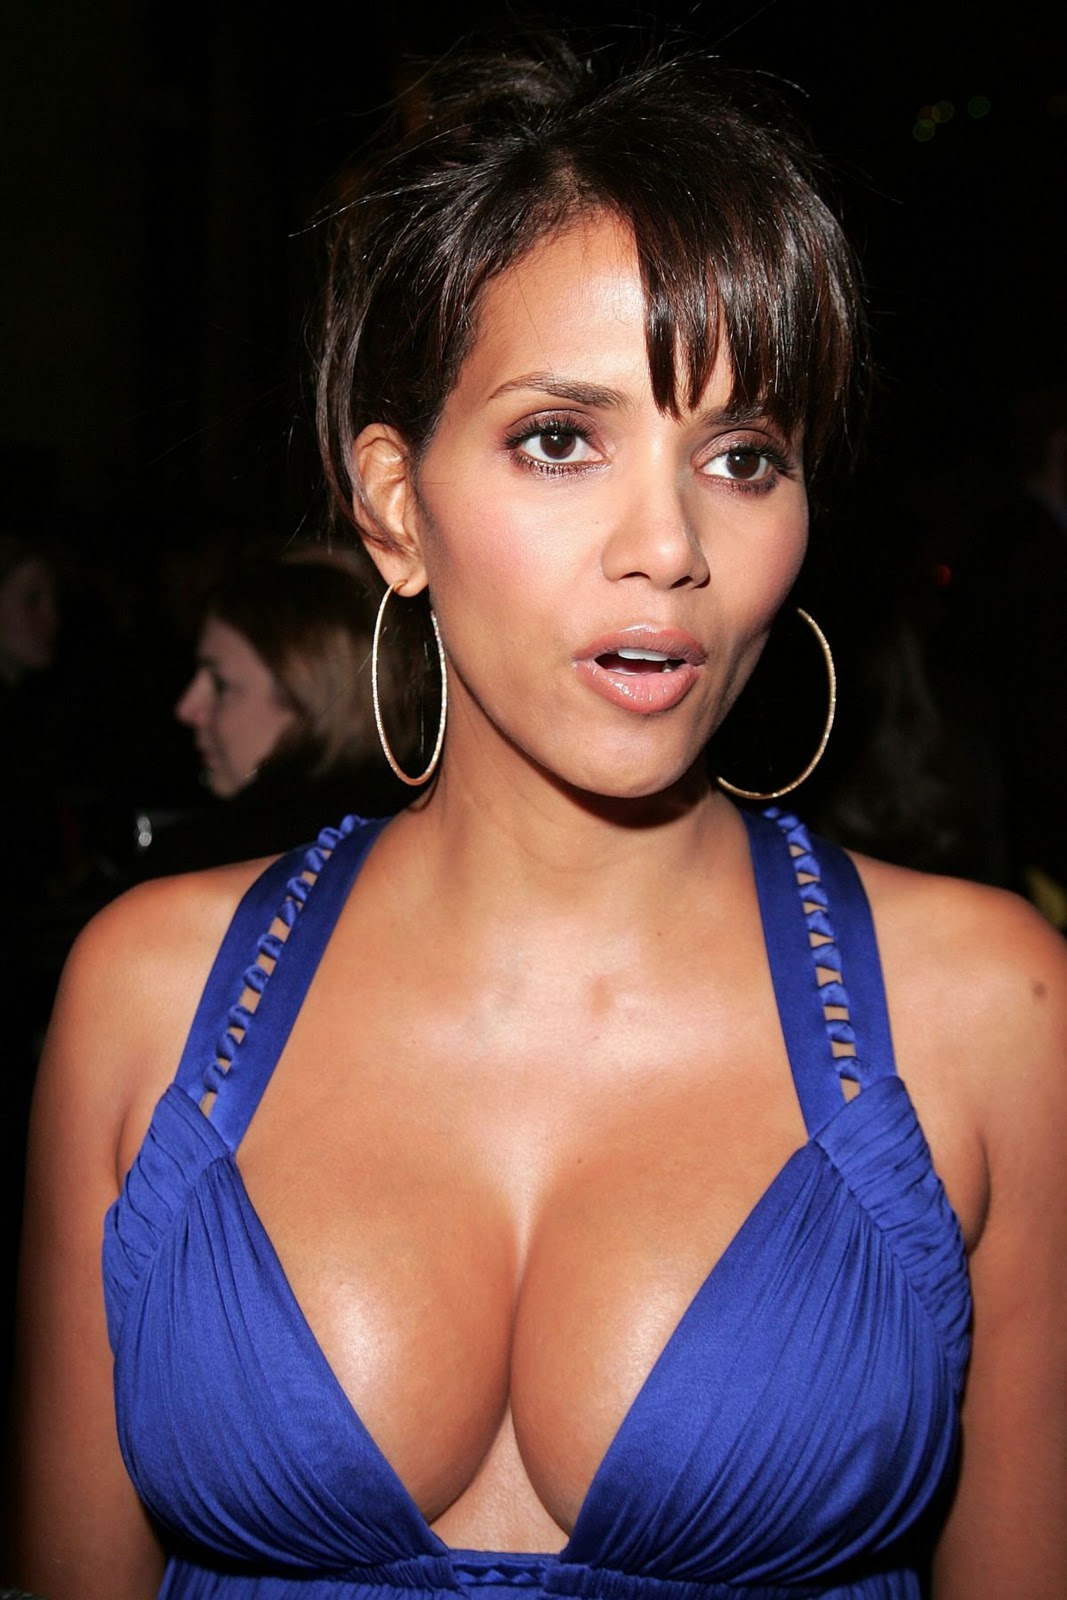 Fun Spack Hot: Top 10 Most Beautiful Breasts Beautiful Actress